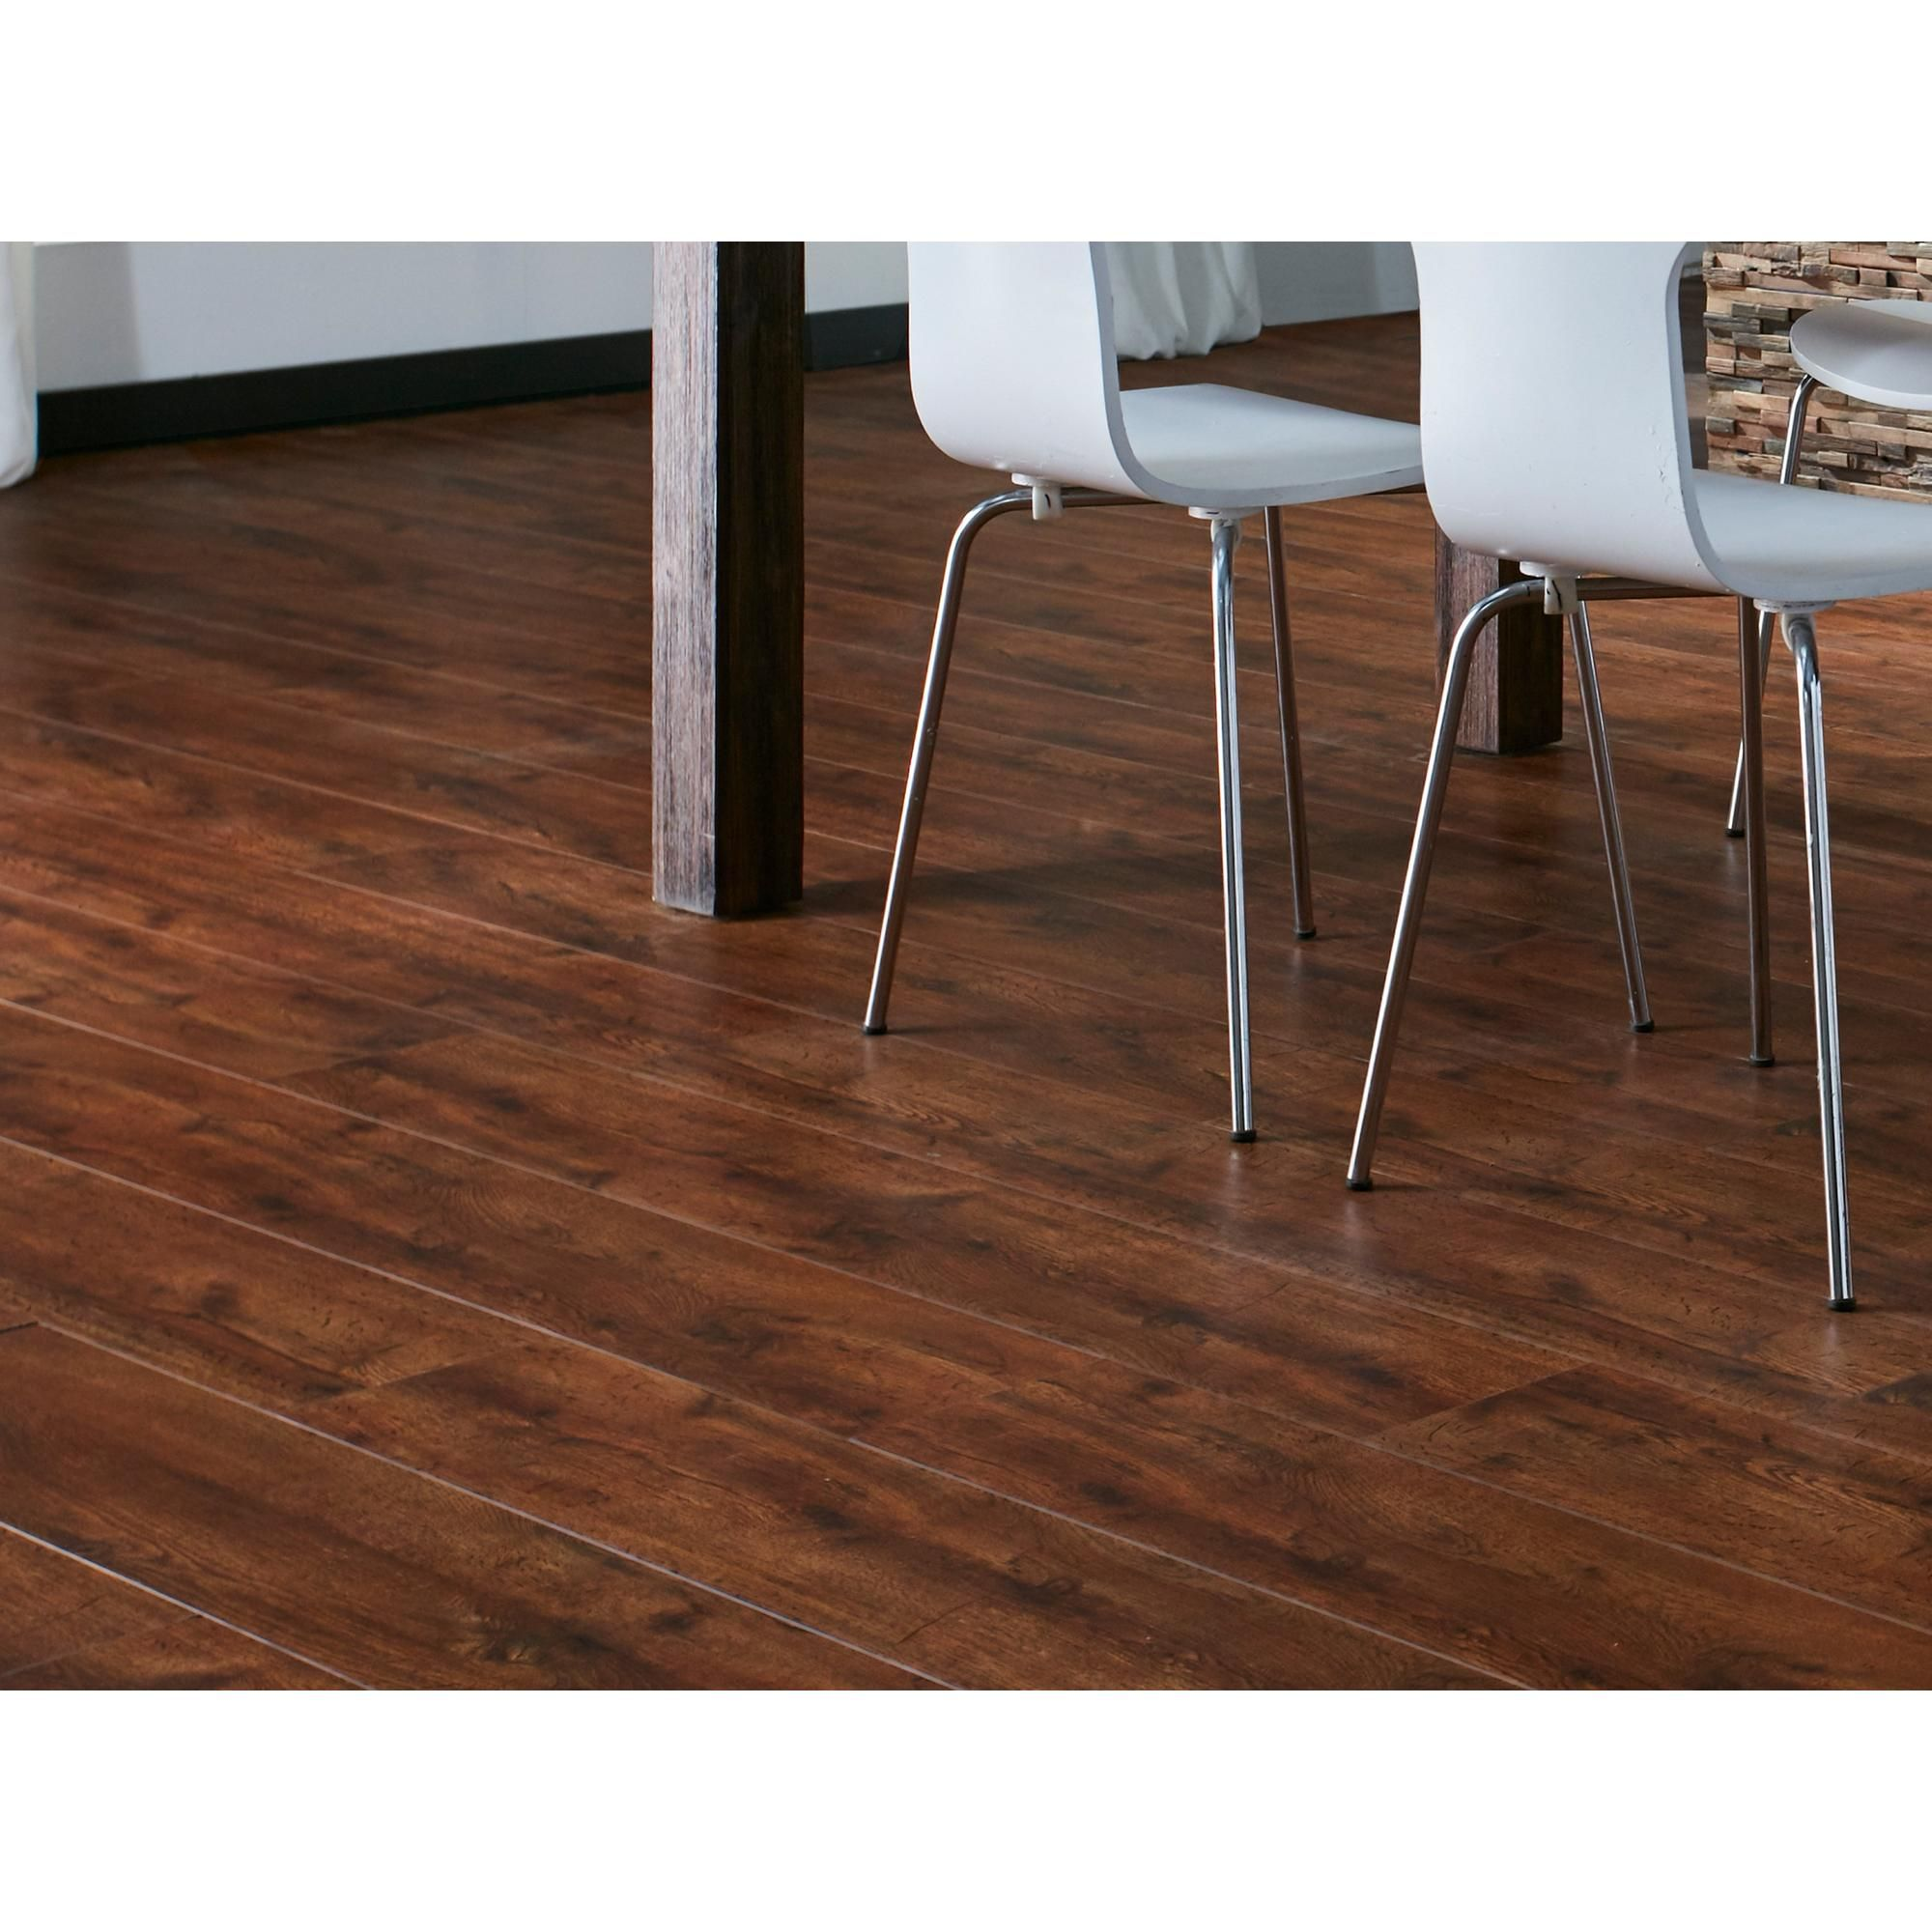 flooring style aged resistant oak at ft lowes selections w l shop in water pl gray com laminate wood floors accessories x smooth